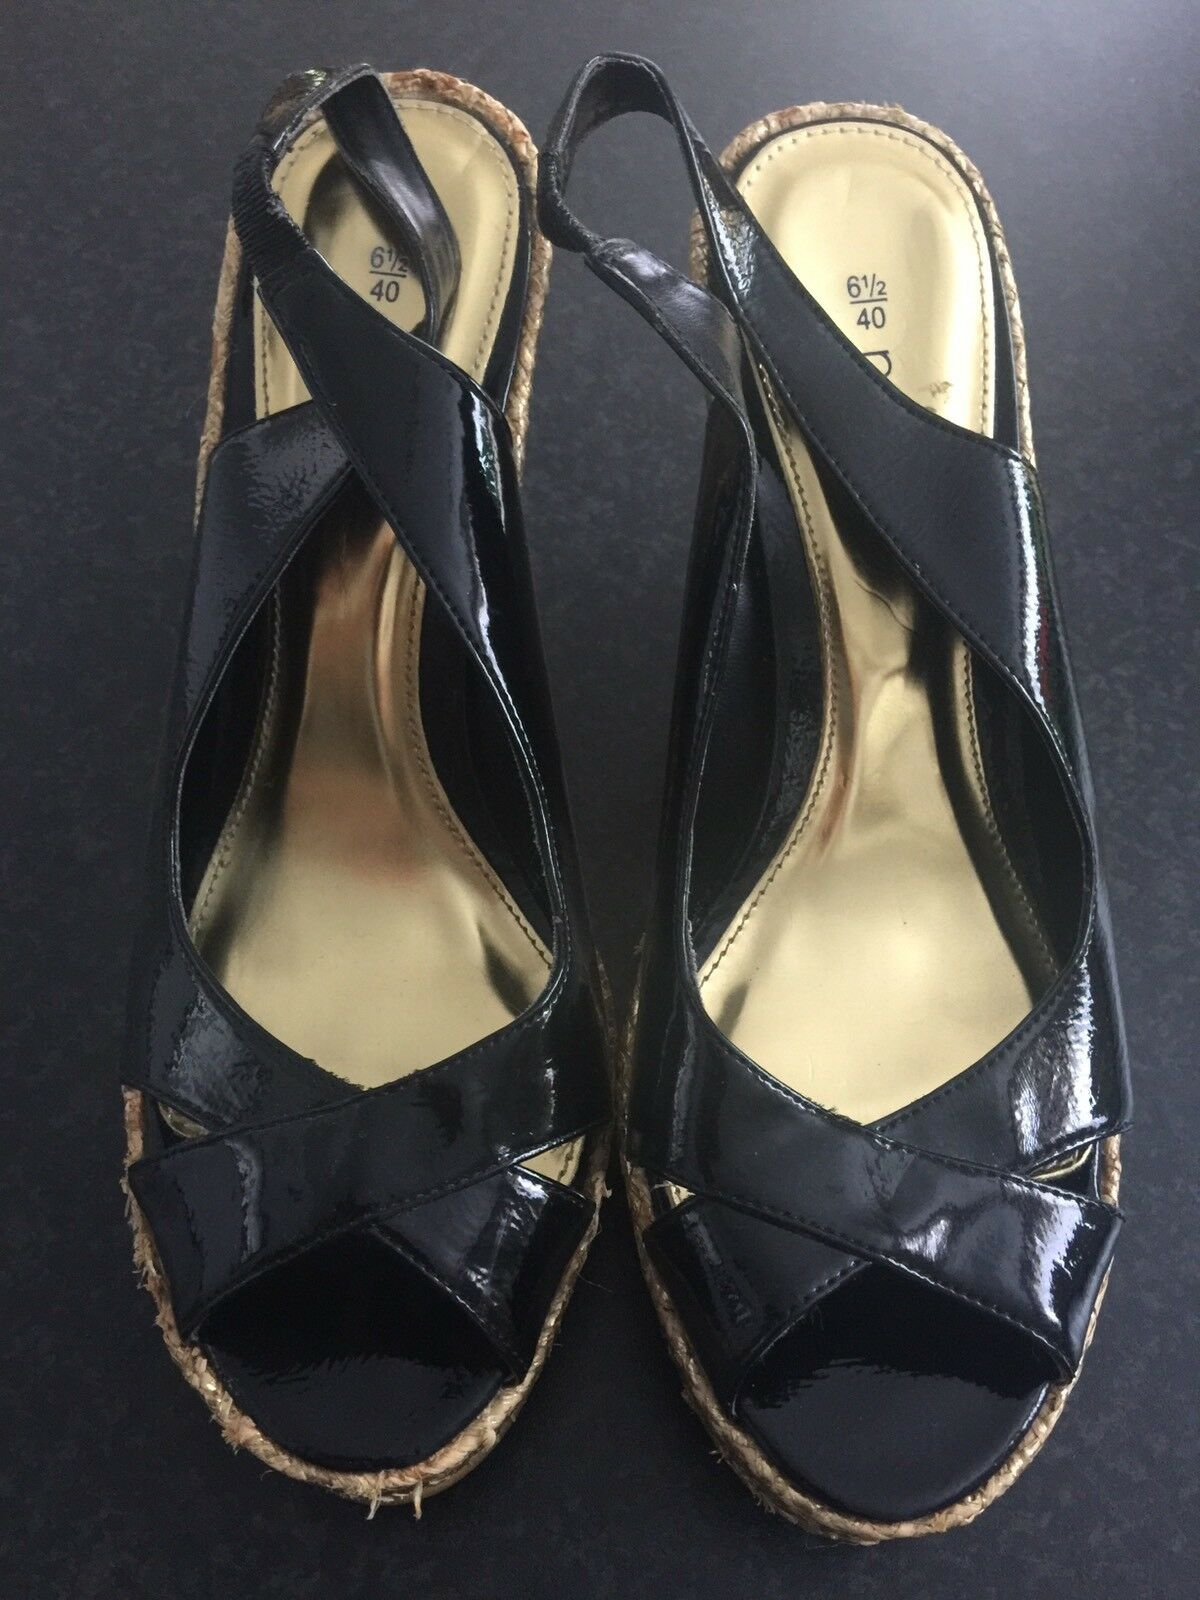 Next Wedge Black Patent With Gold Wedge Next Size 6.5 / 40 138eca